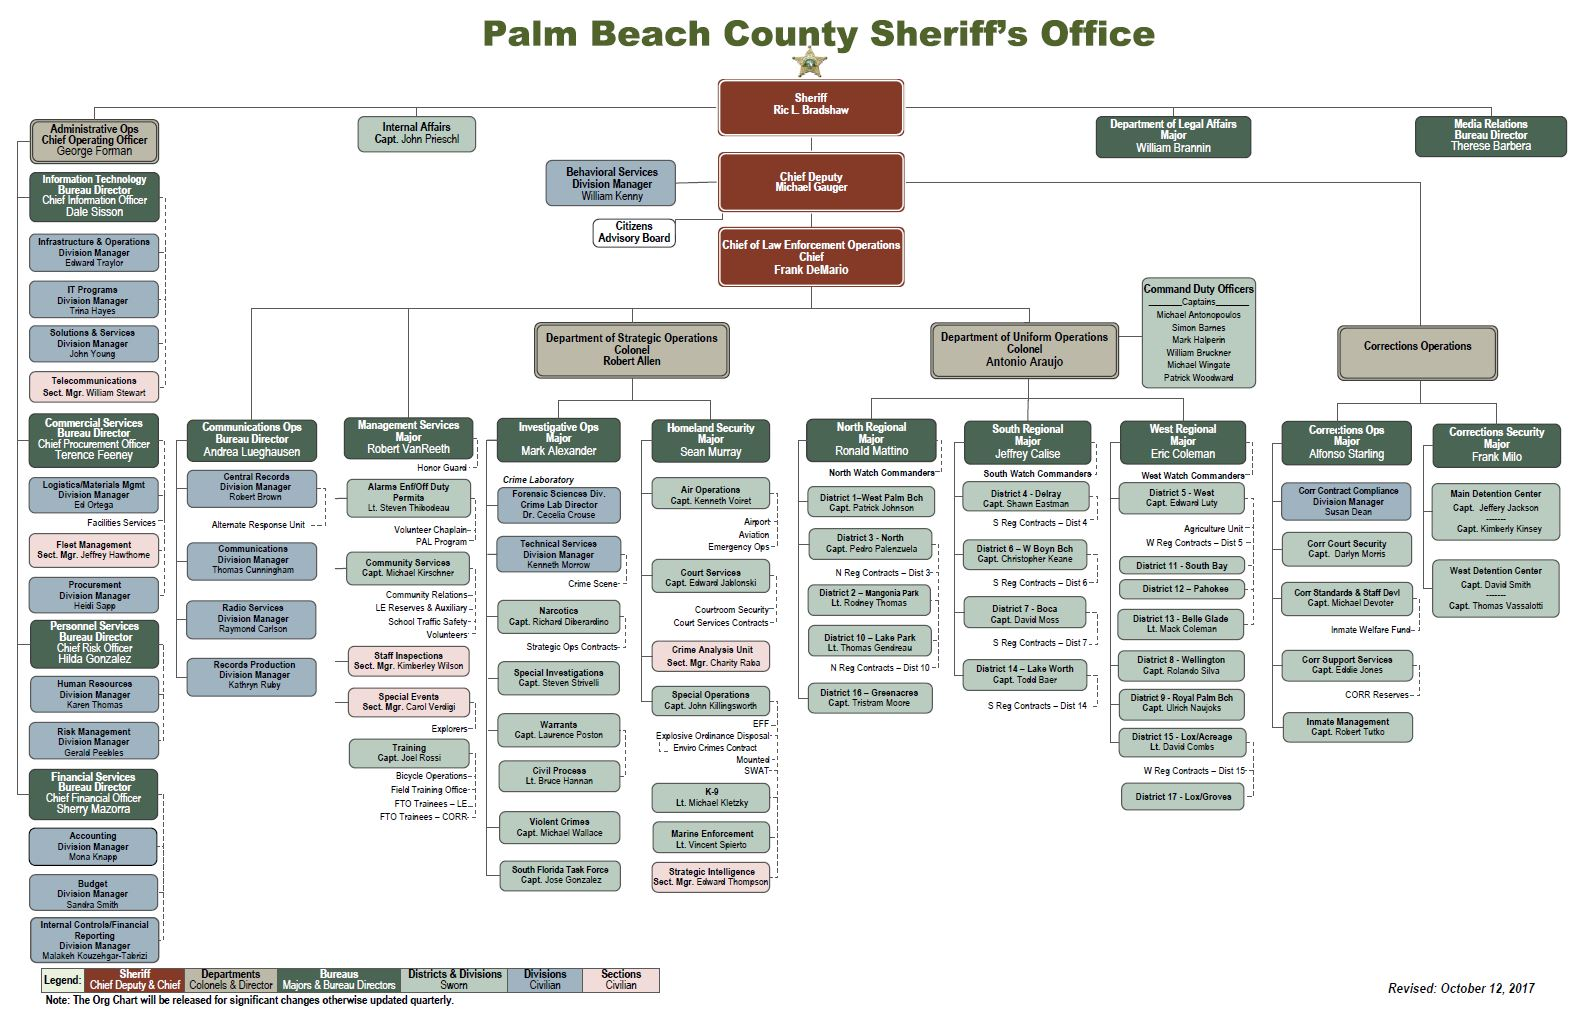 Organizational chart palm beach county sheriff 39 s office - Palm beach county property appraisers office ...